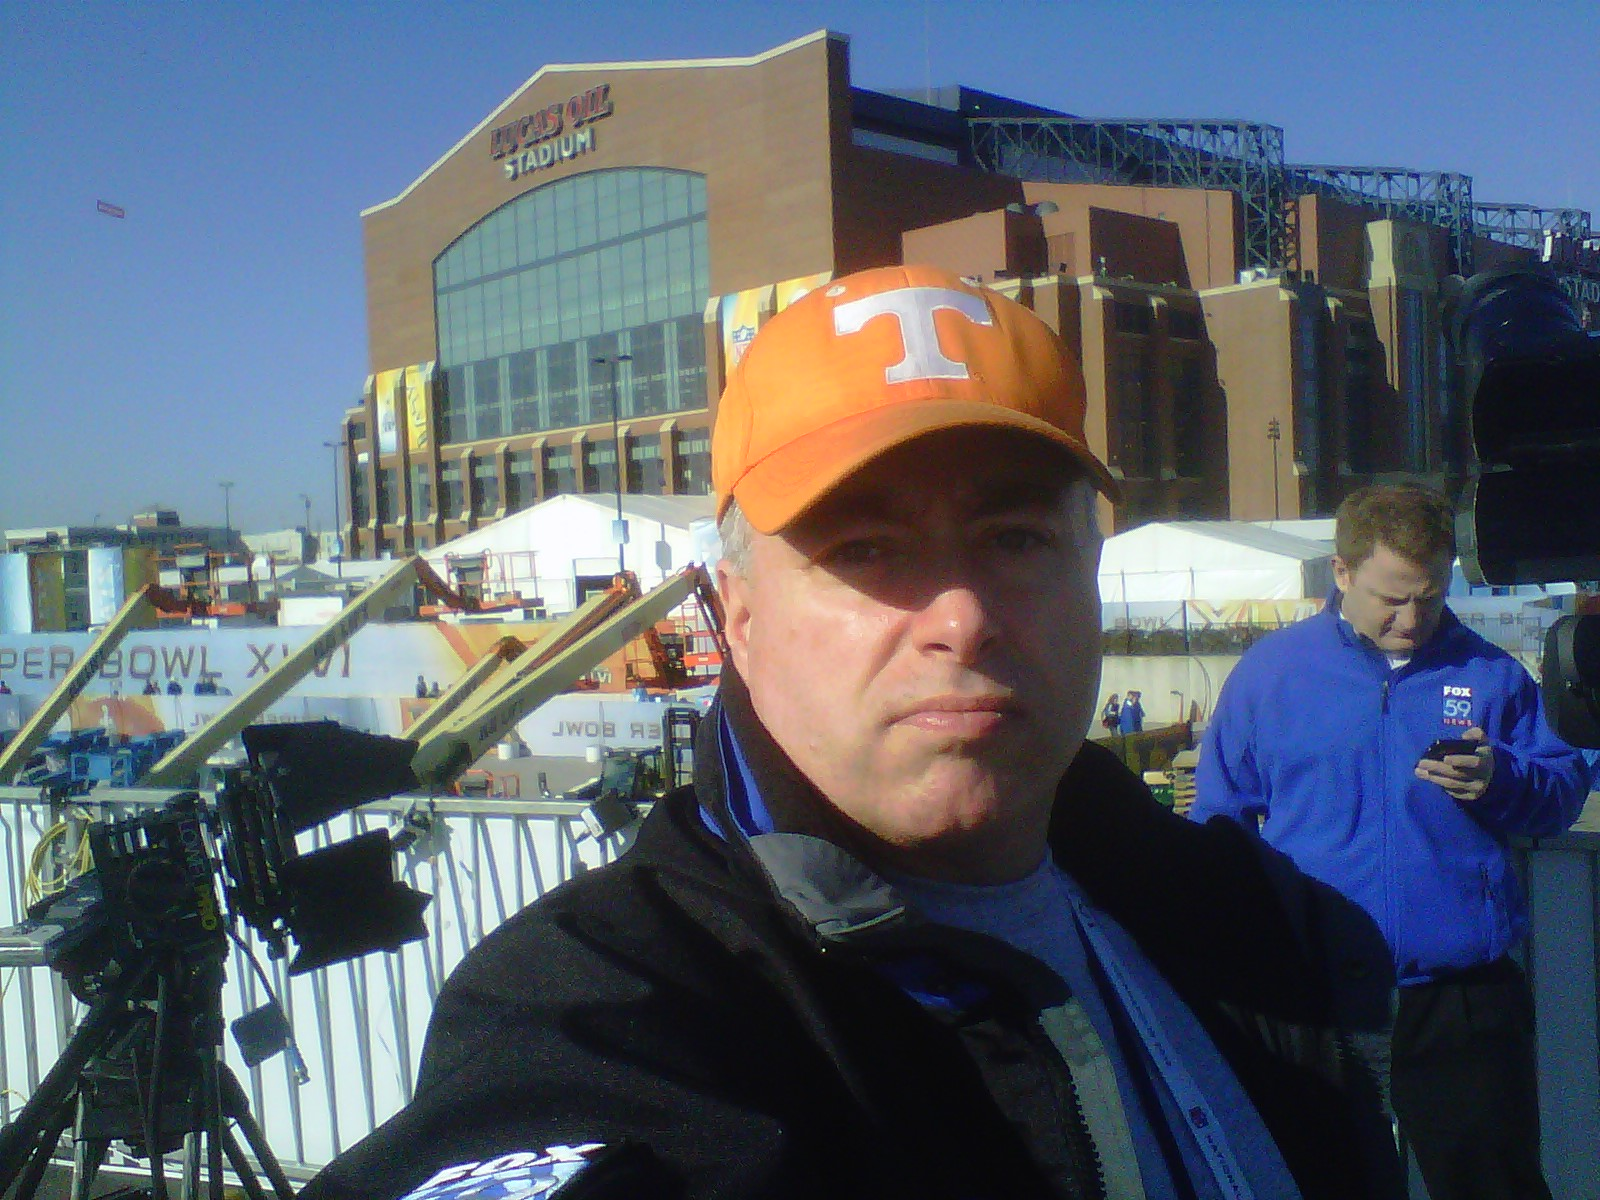 Working the Super Bowl in Broadcasting-img00509-20120205-1456.jpg